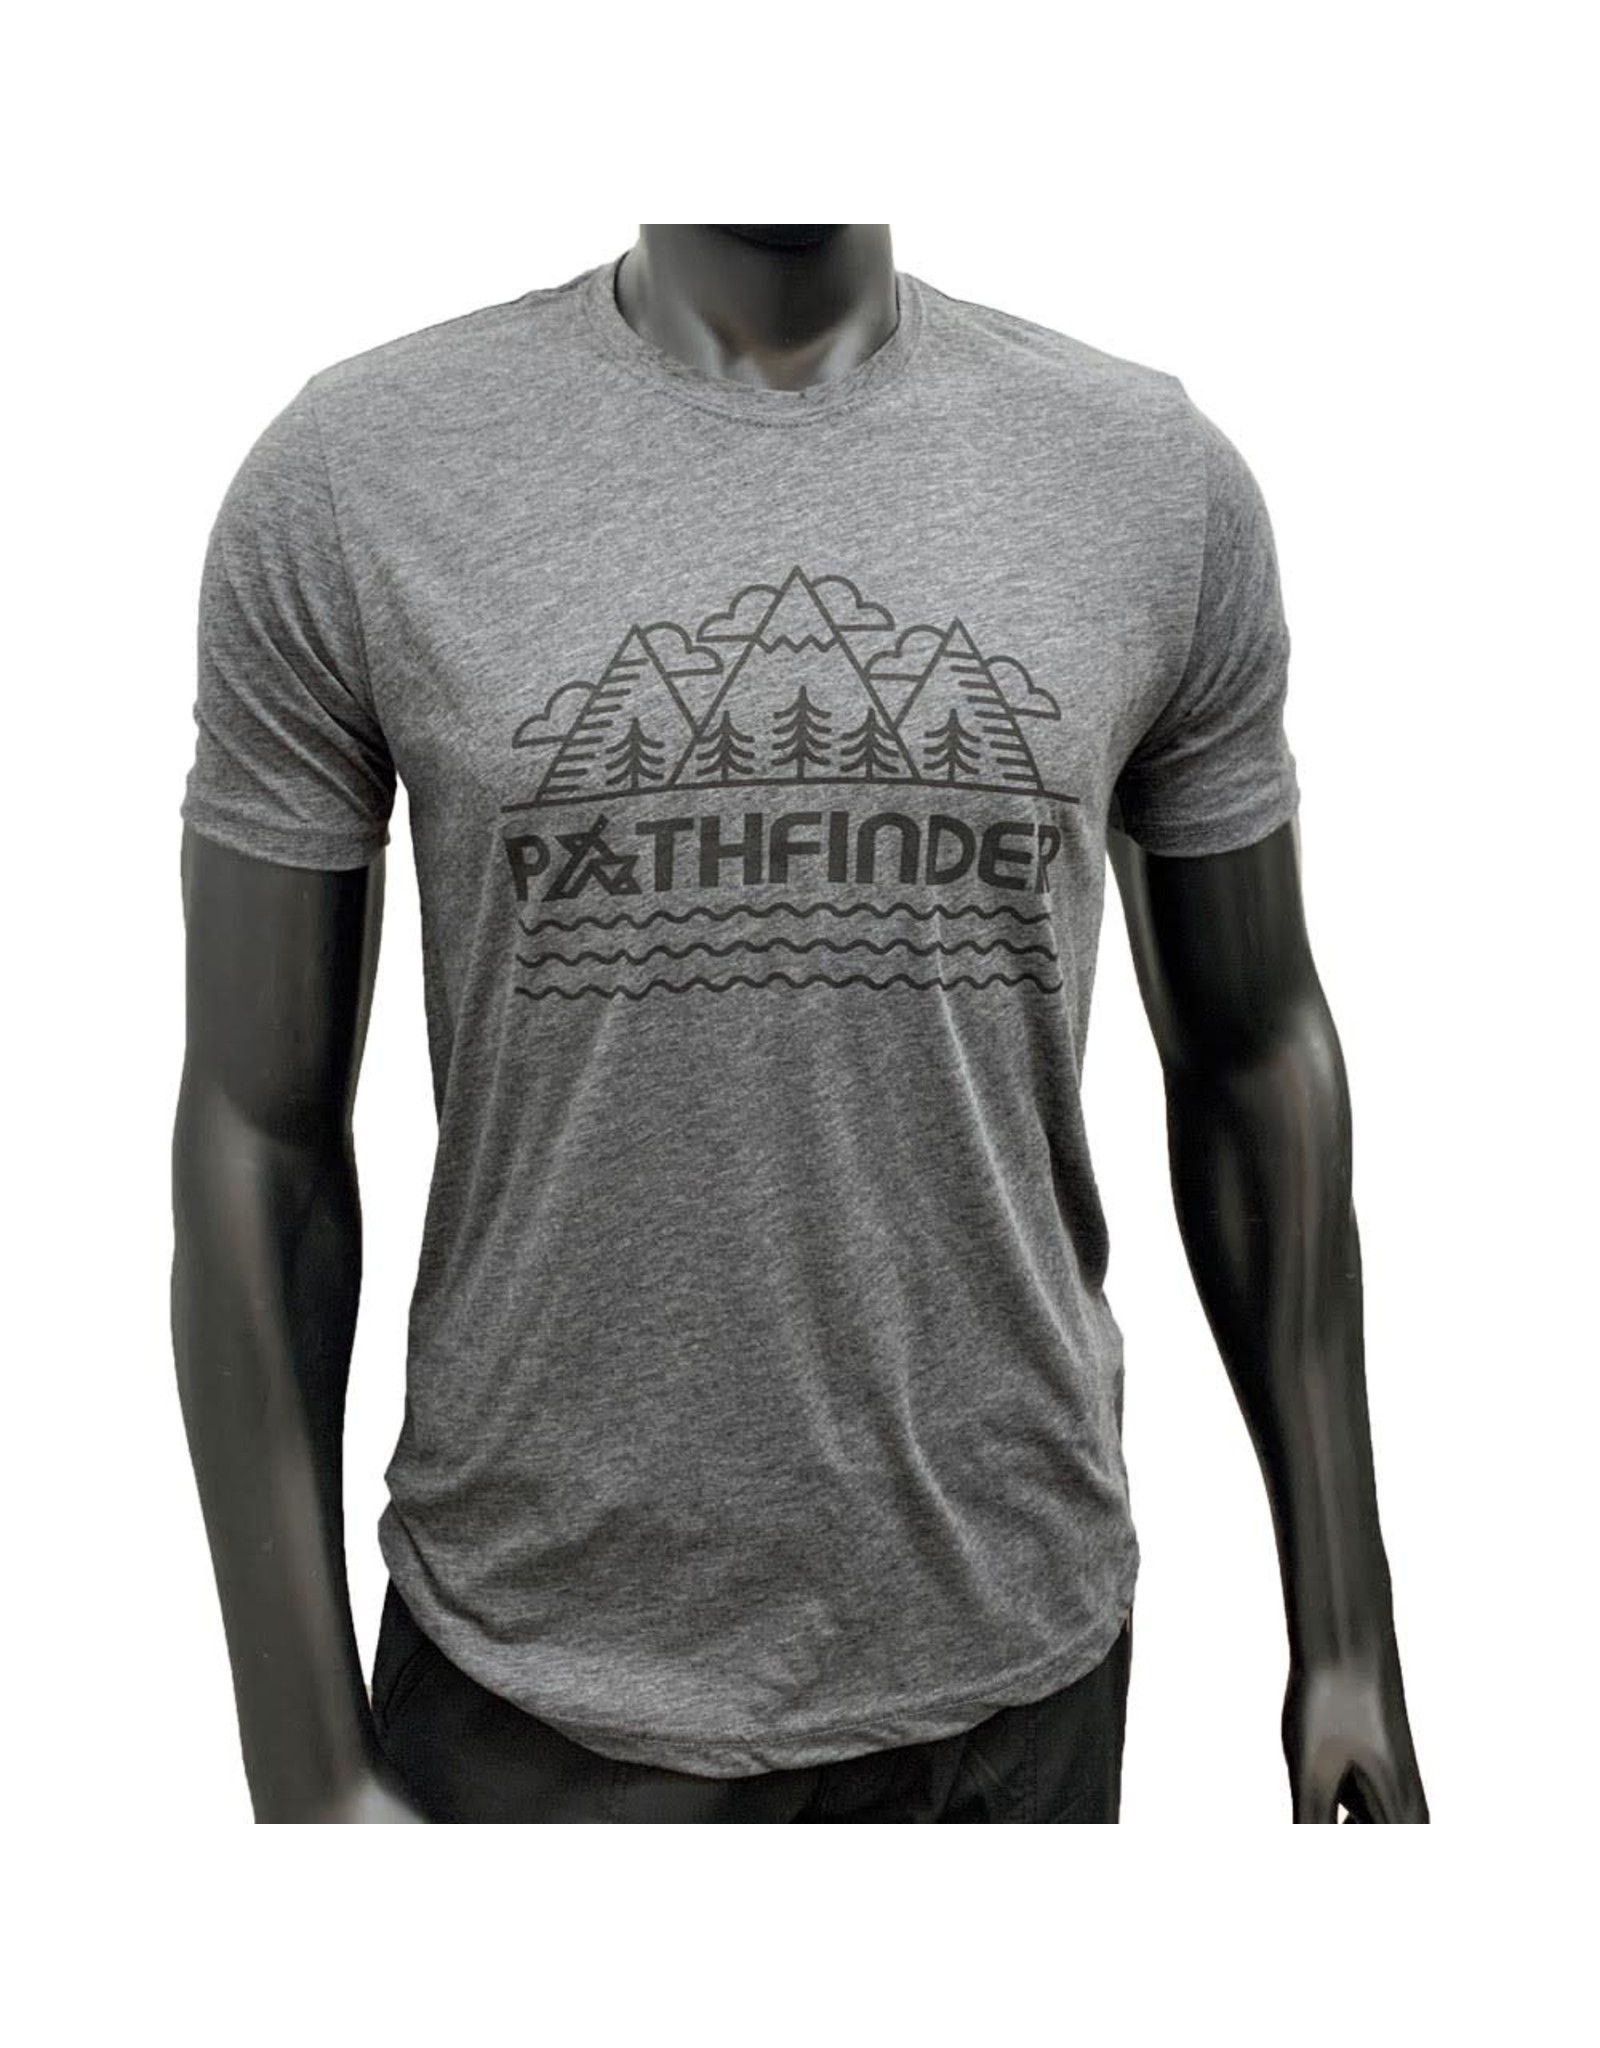 Pathfinder Mountain Poly/Cotton Crew Tee Charcoal/Black